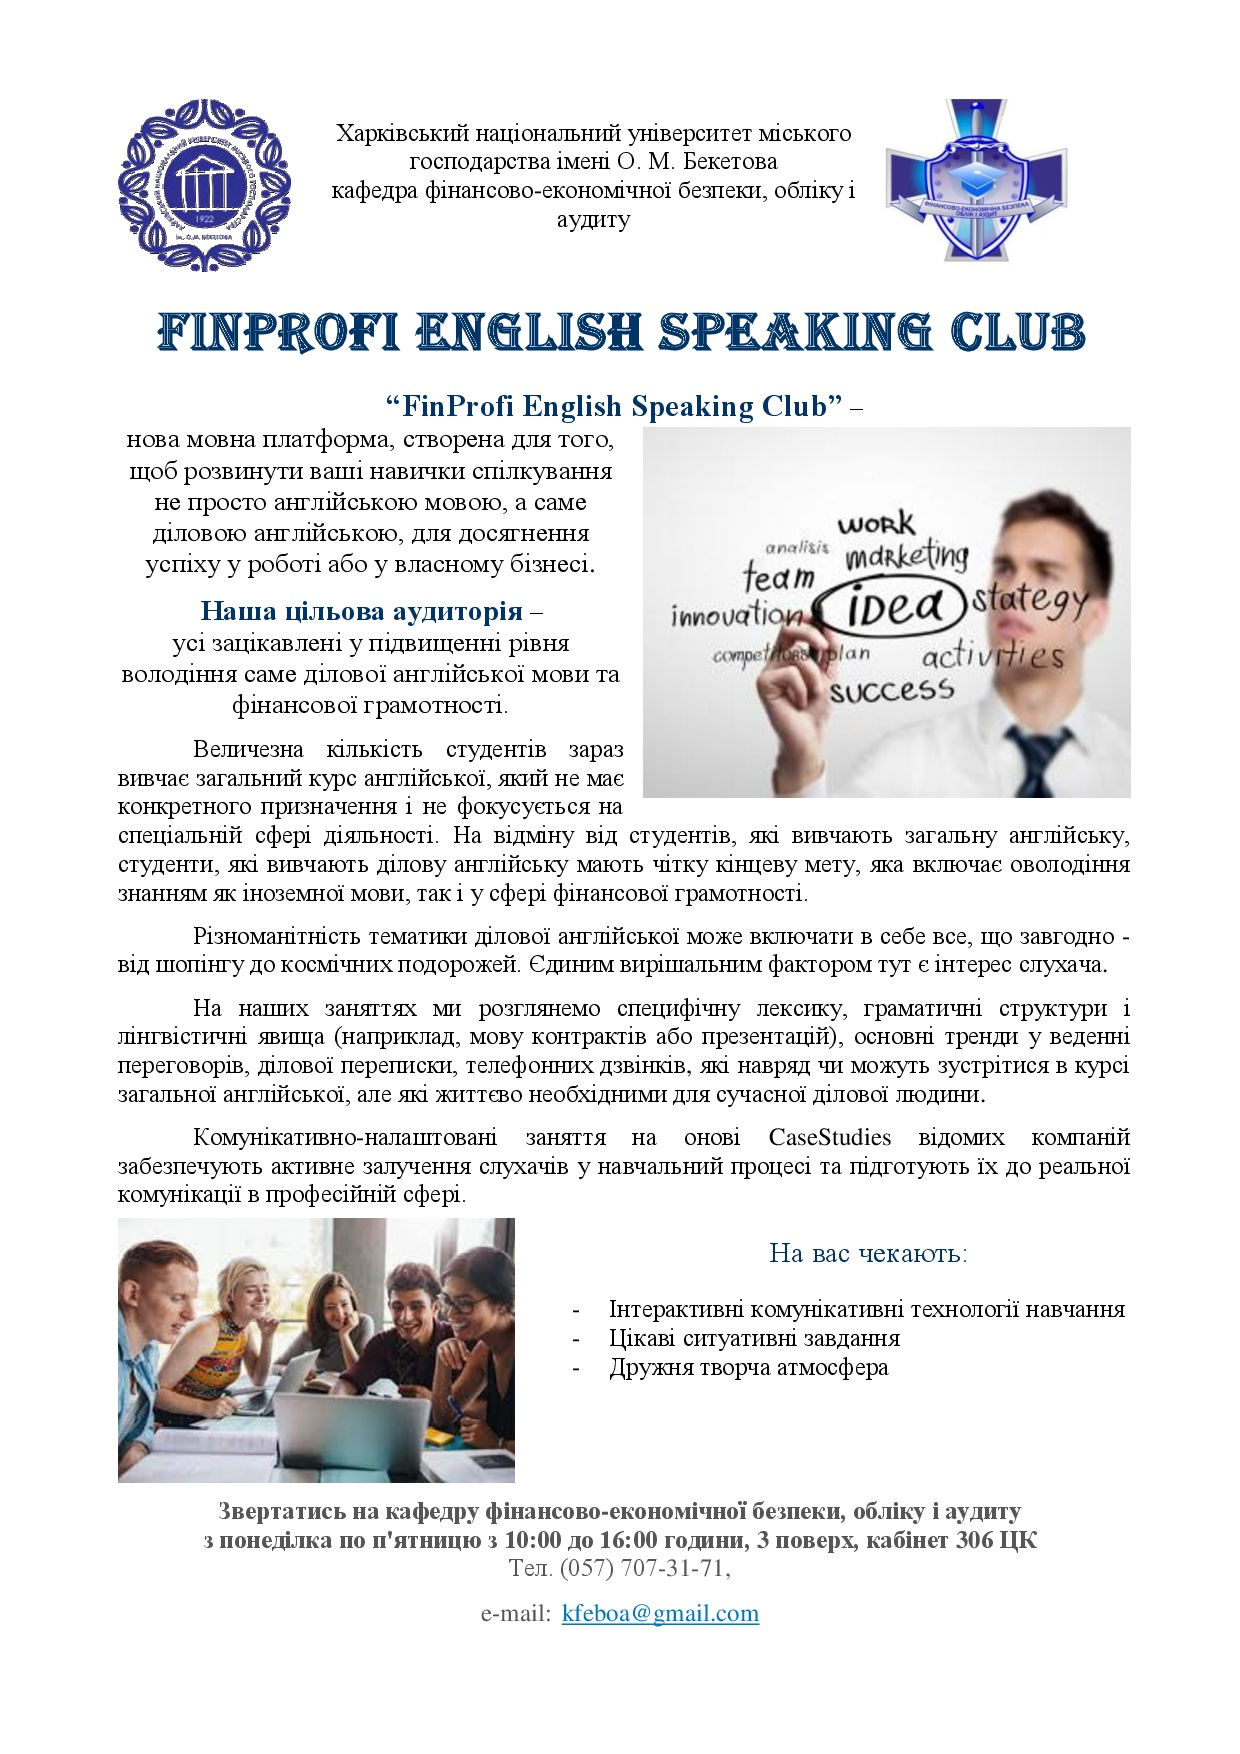 FinProfi English Speaking Club